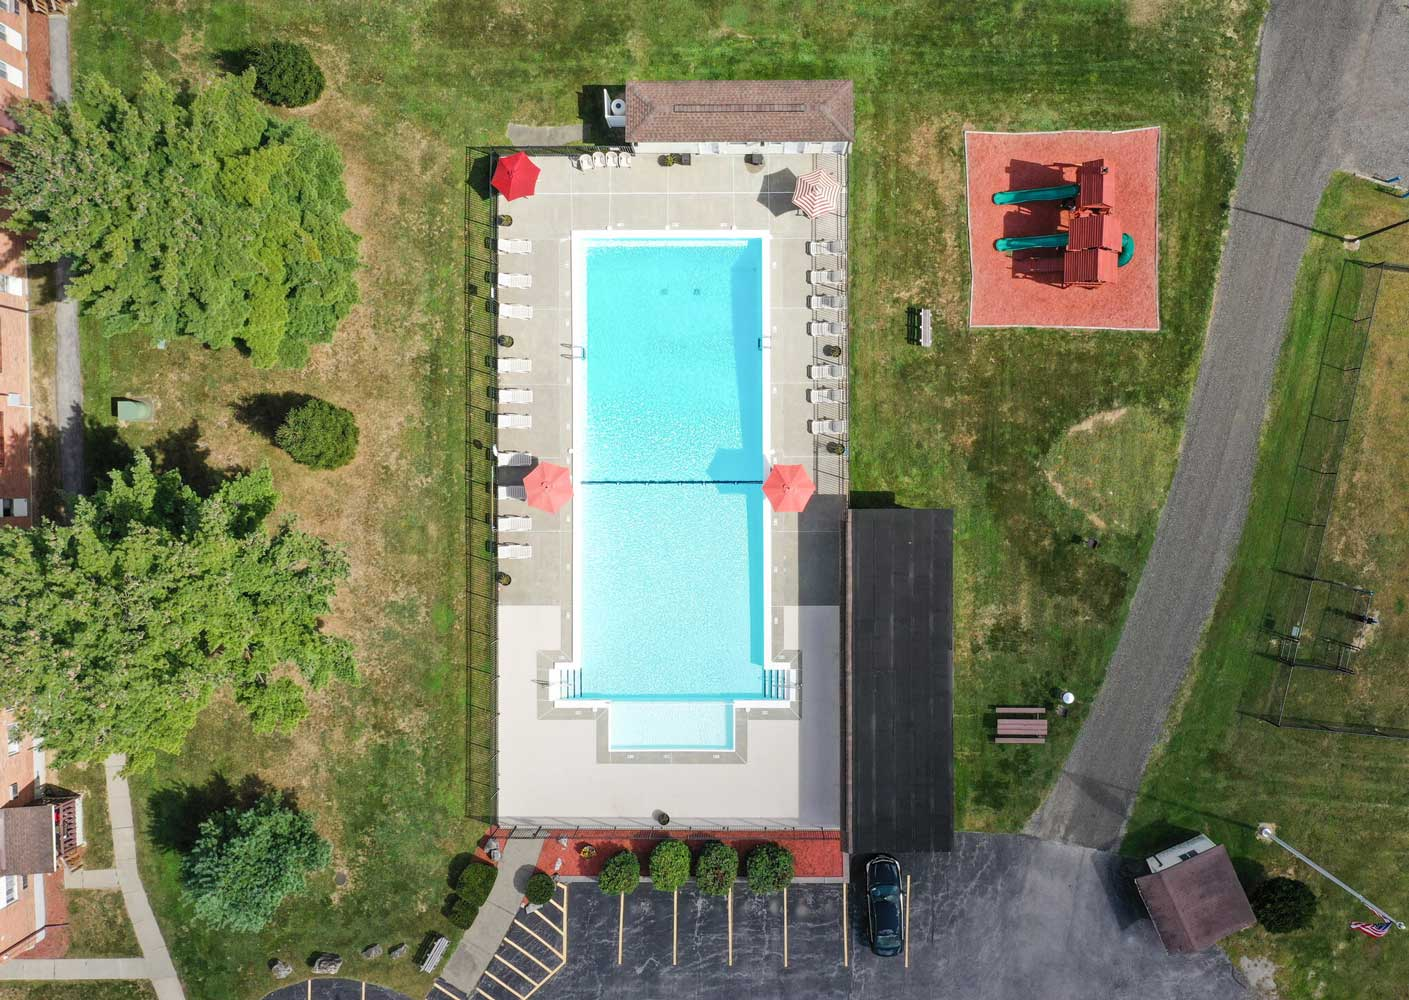 Aerial View of Mountainview Gardens Apartments in Fishkill, NY